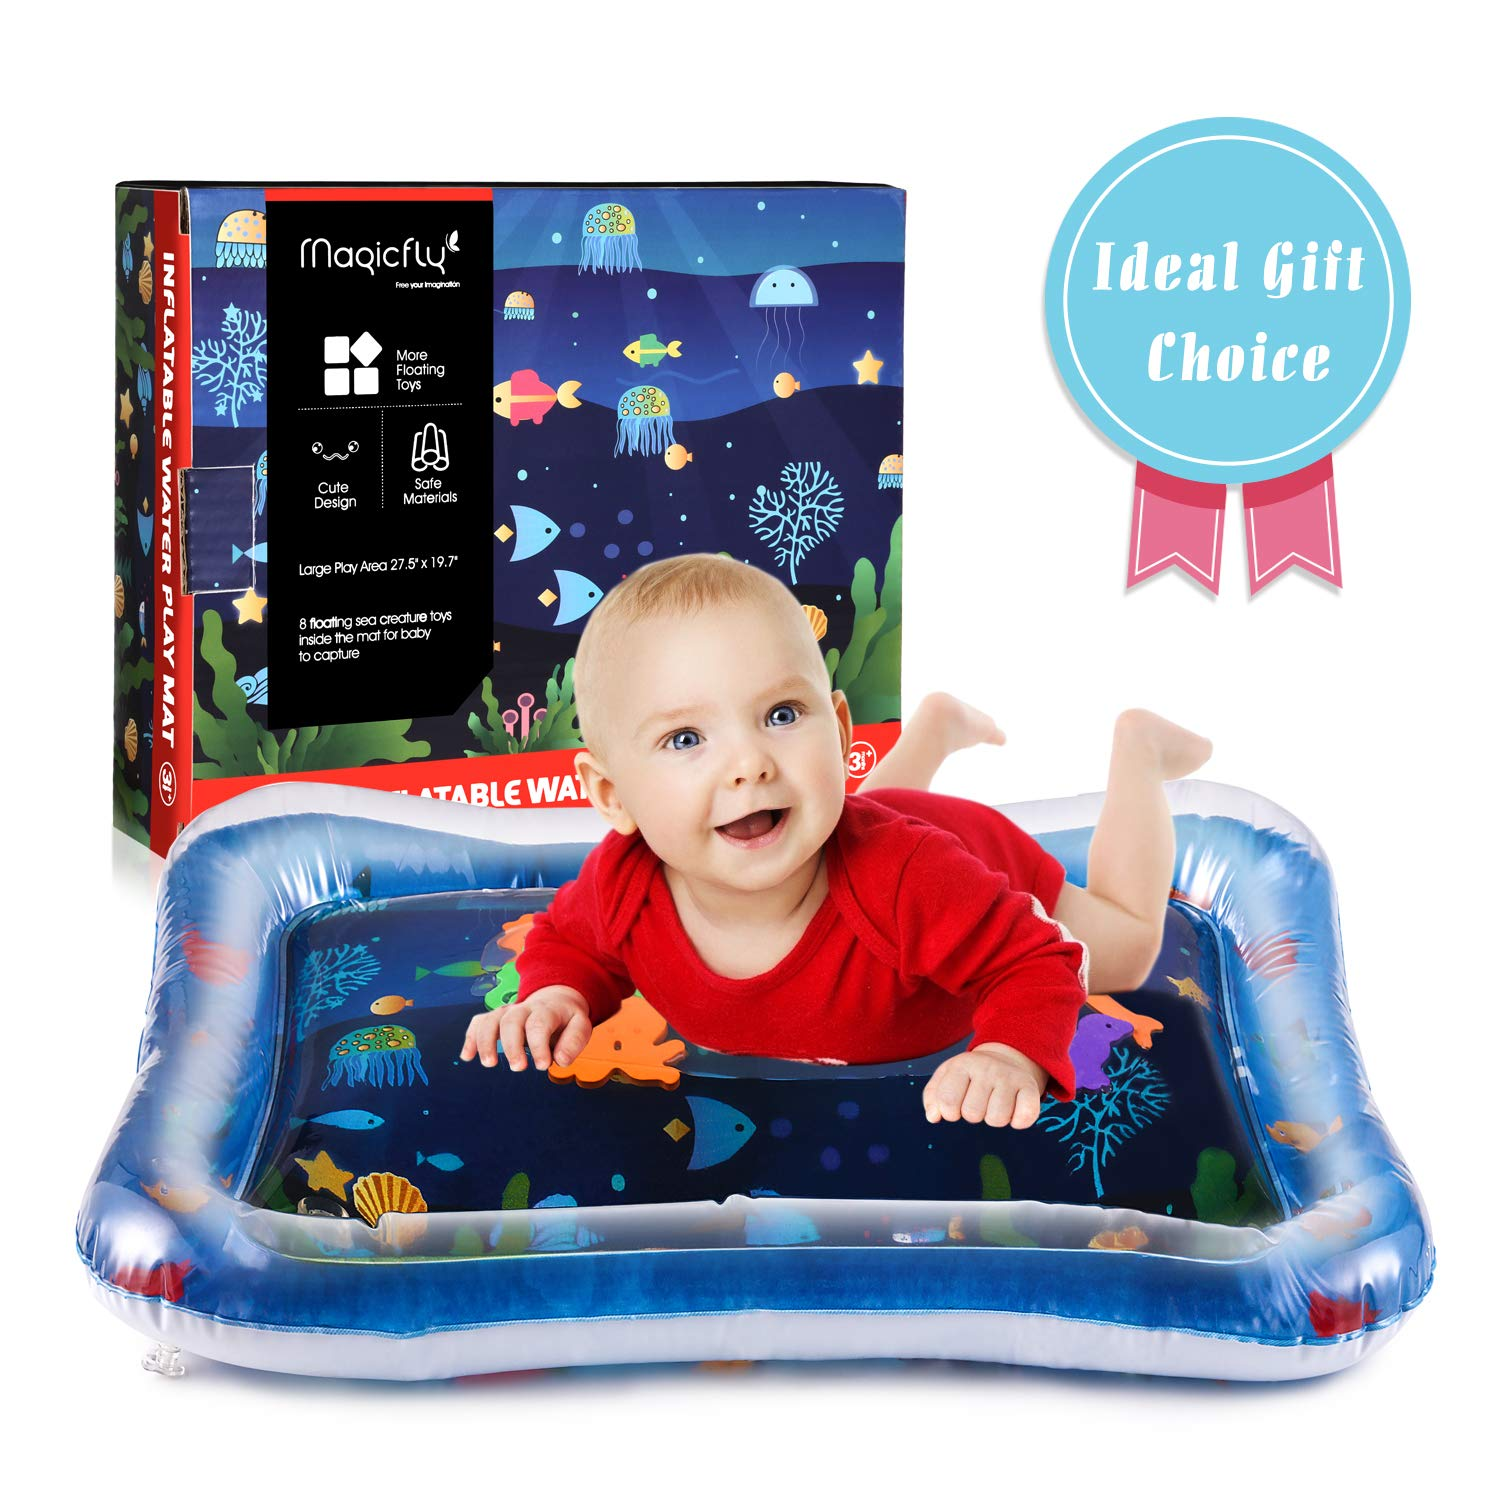 Magicfly Premium Baby Water Mat 27.5 X 19.7 inches Inflatable Tummy Time Mat for Infant Toys 3 Months